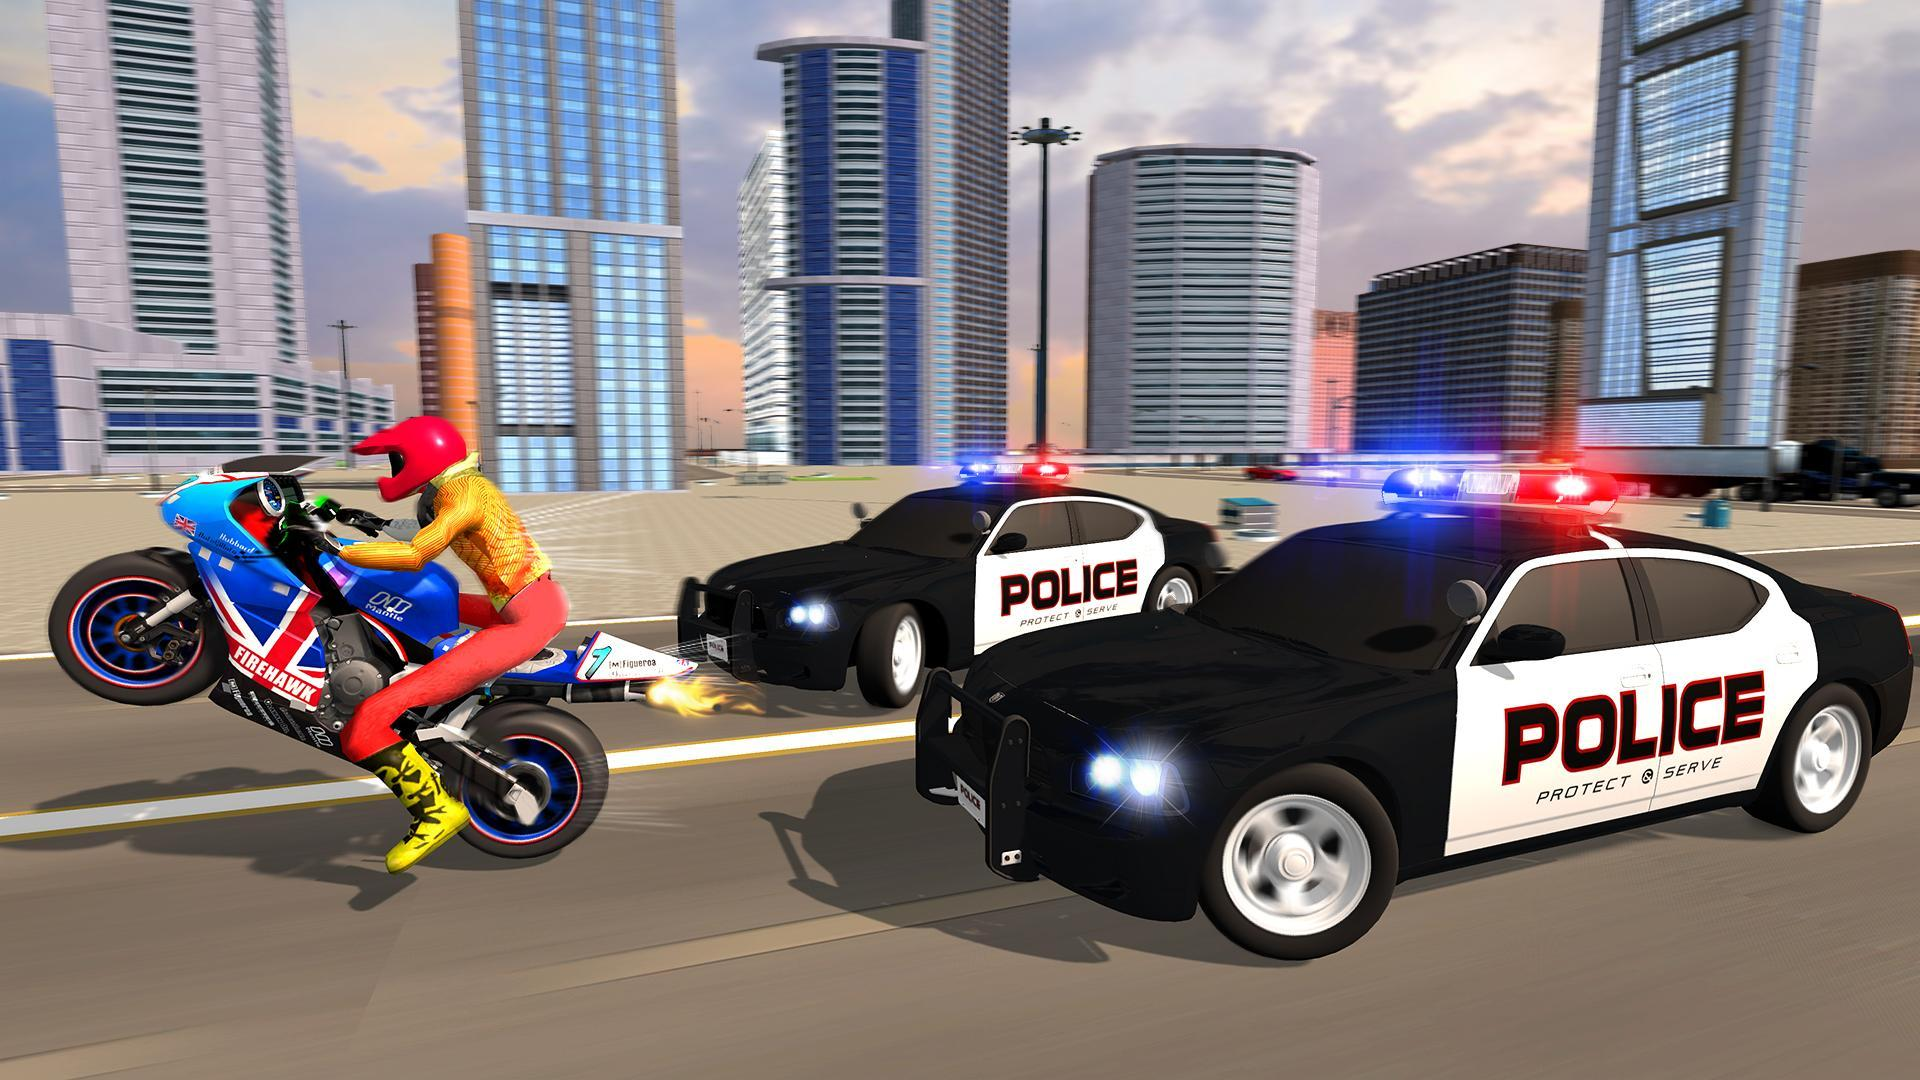 Police Car Vs Theft Bike for Android - APK Download